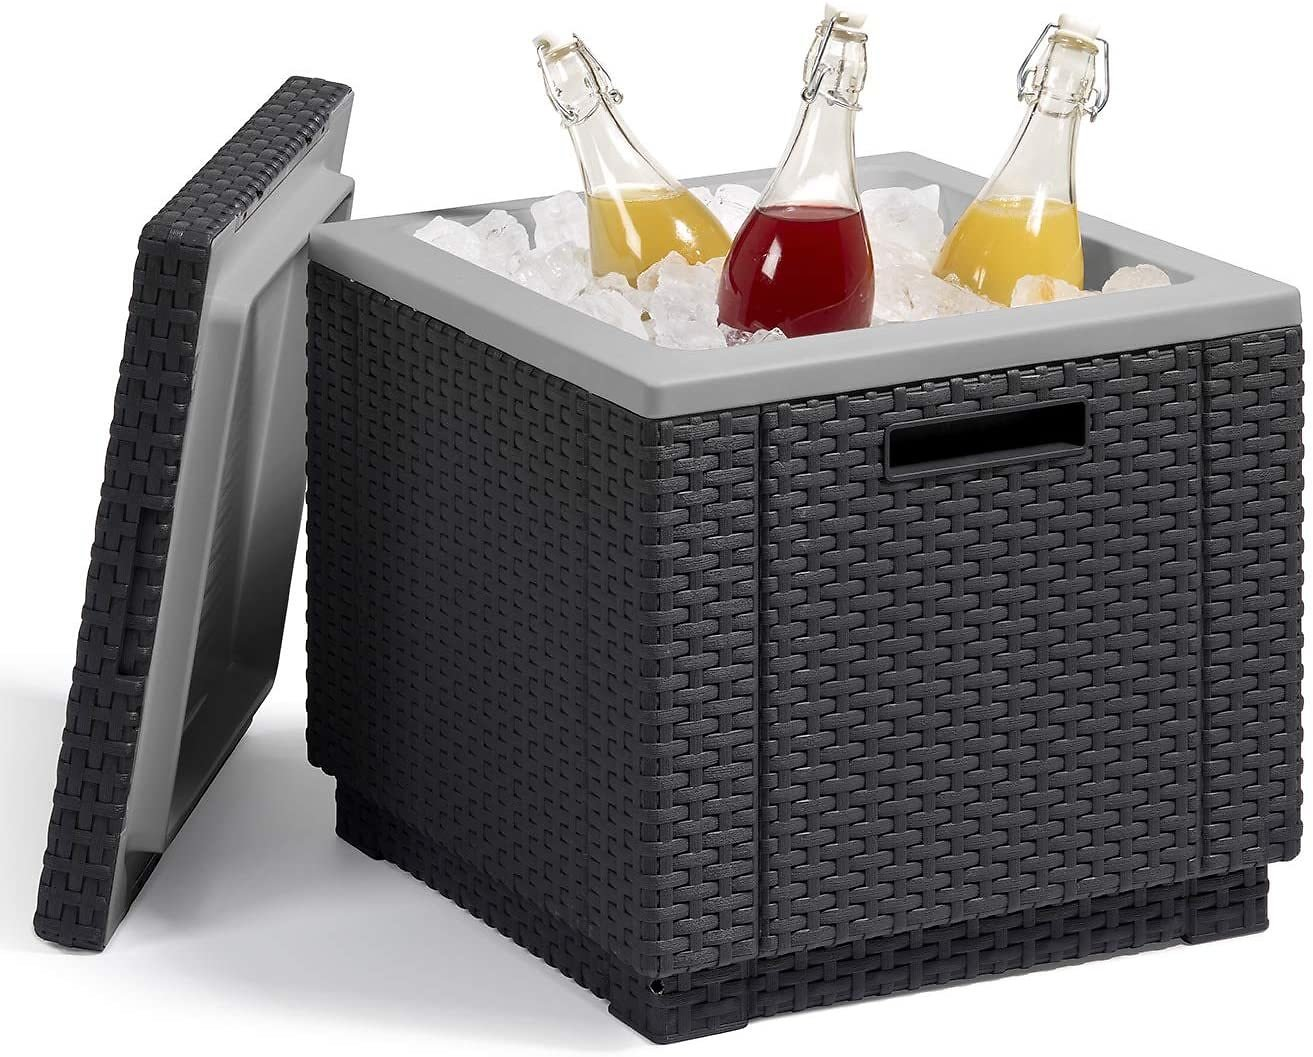 Keter Ice Cube Beer and Wine Cooler Table, Graphite